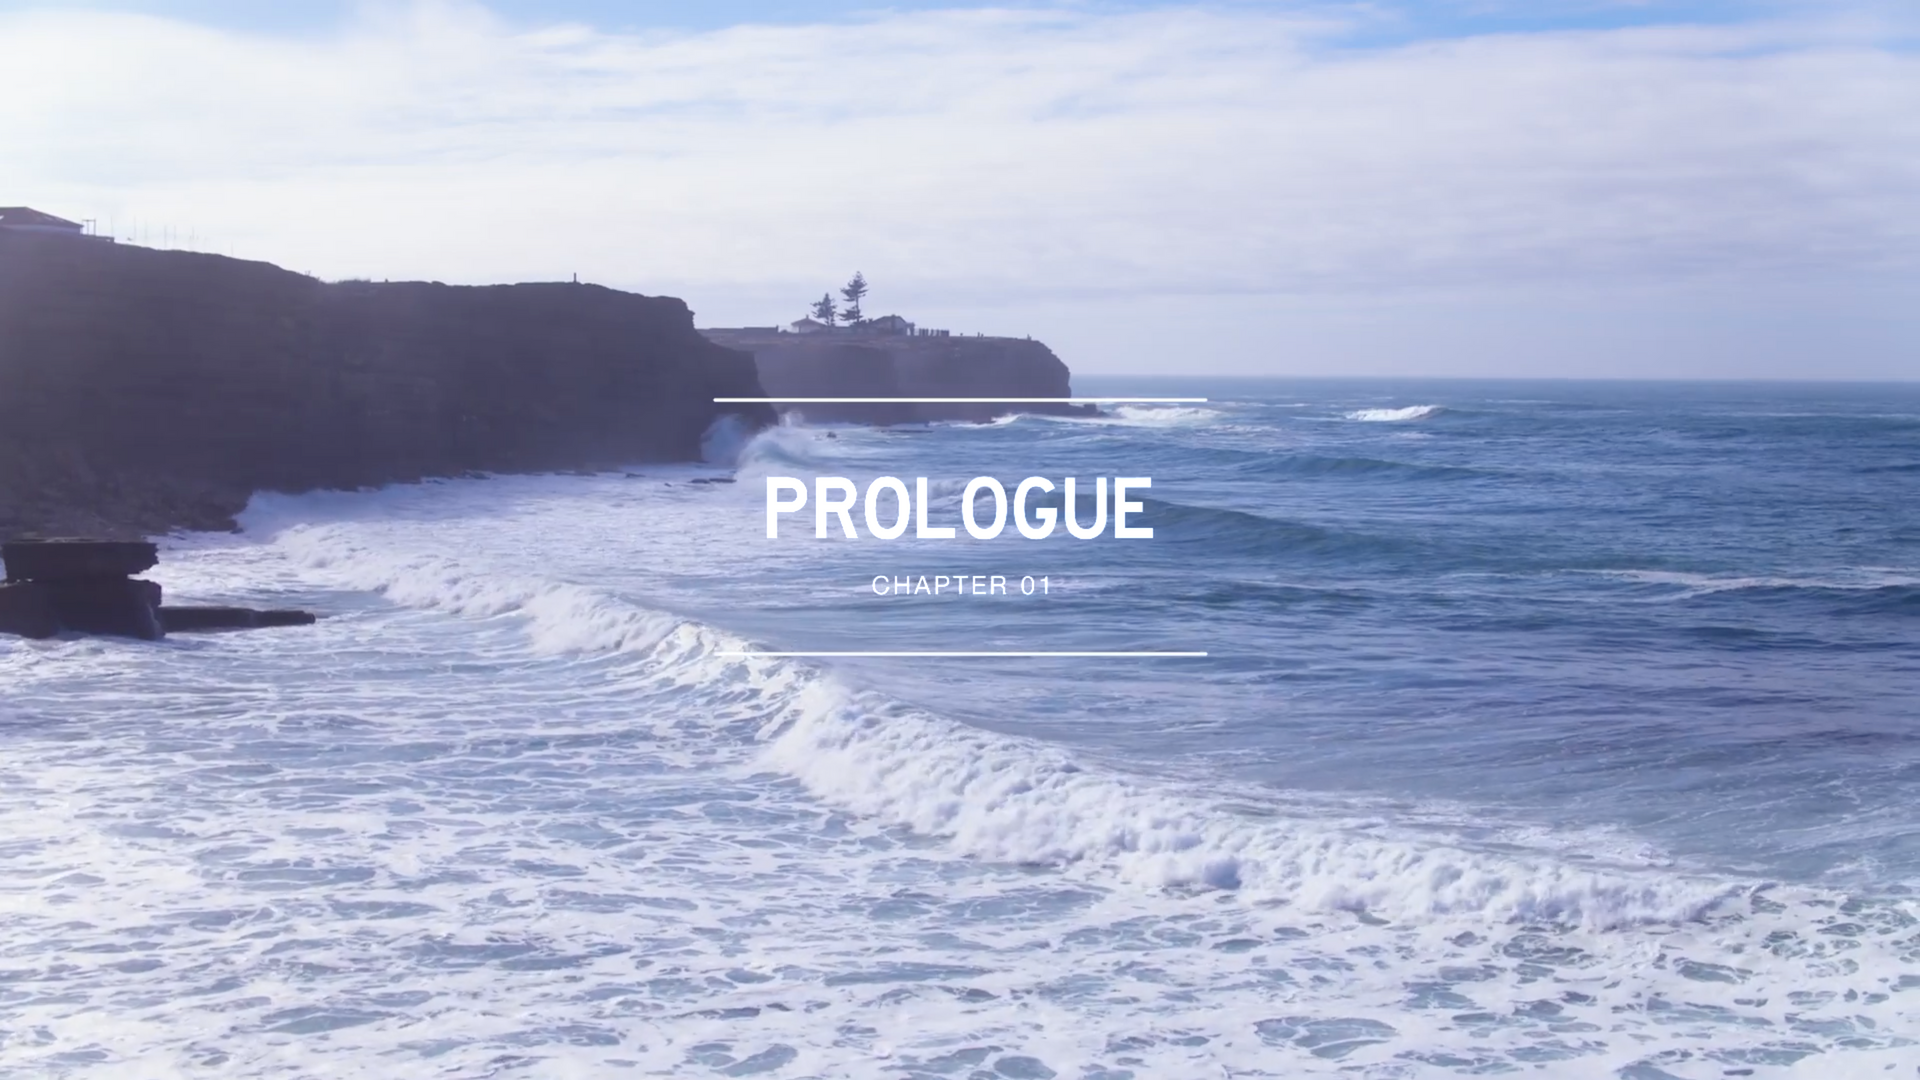 CHAPTER 01: PROLOGUE